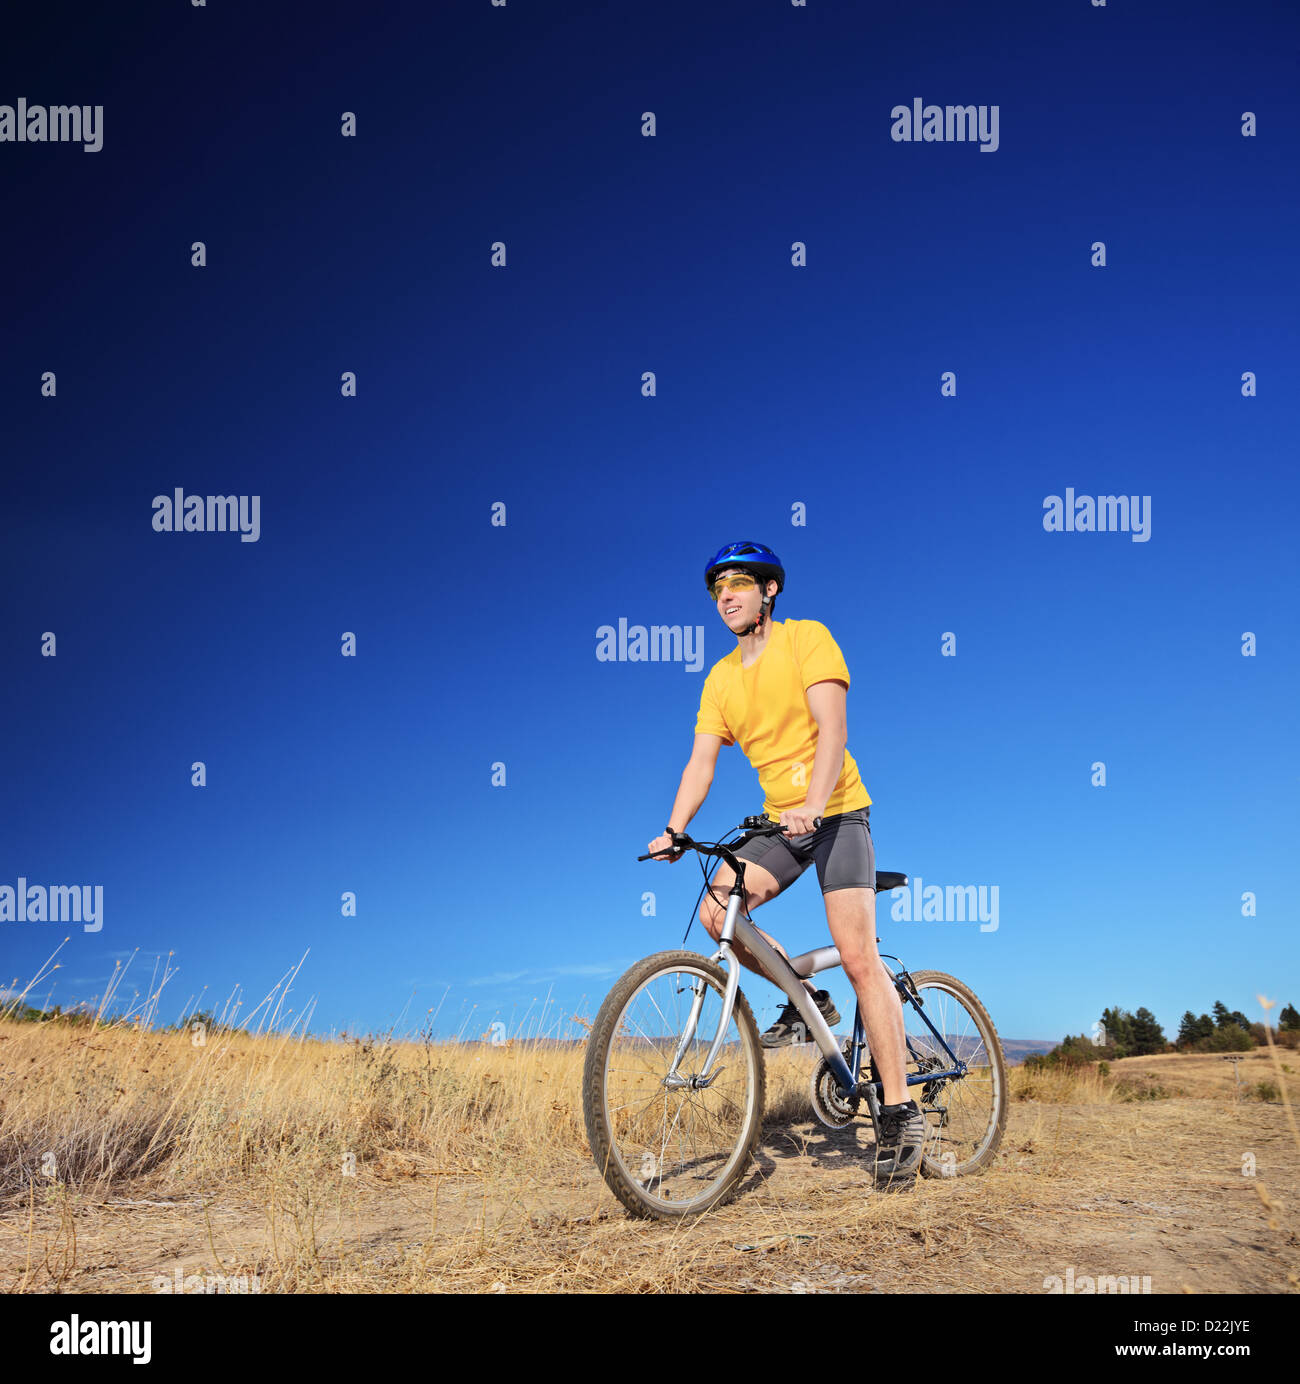 Panning shot of a bicycle rider riding a mountain bike outdoors on a sunny day against a cloudless blue sky - Stock Image